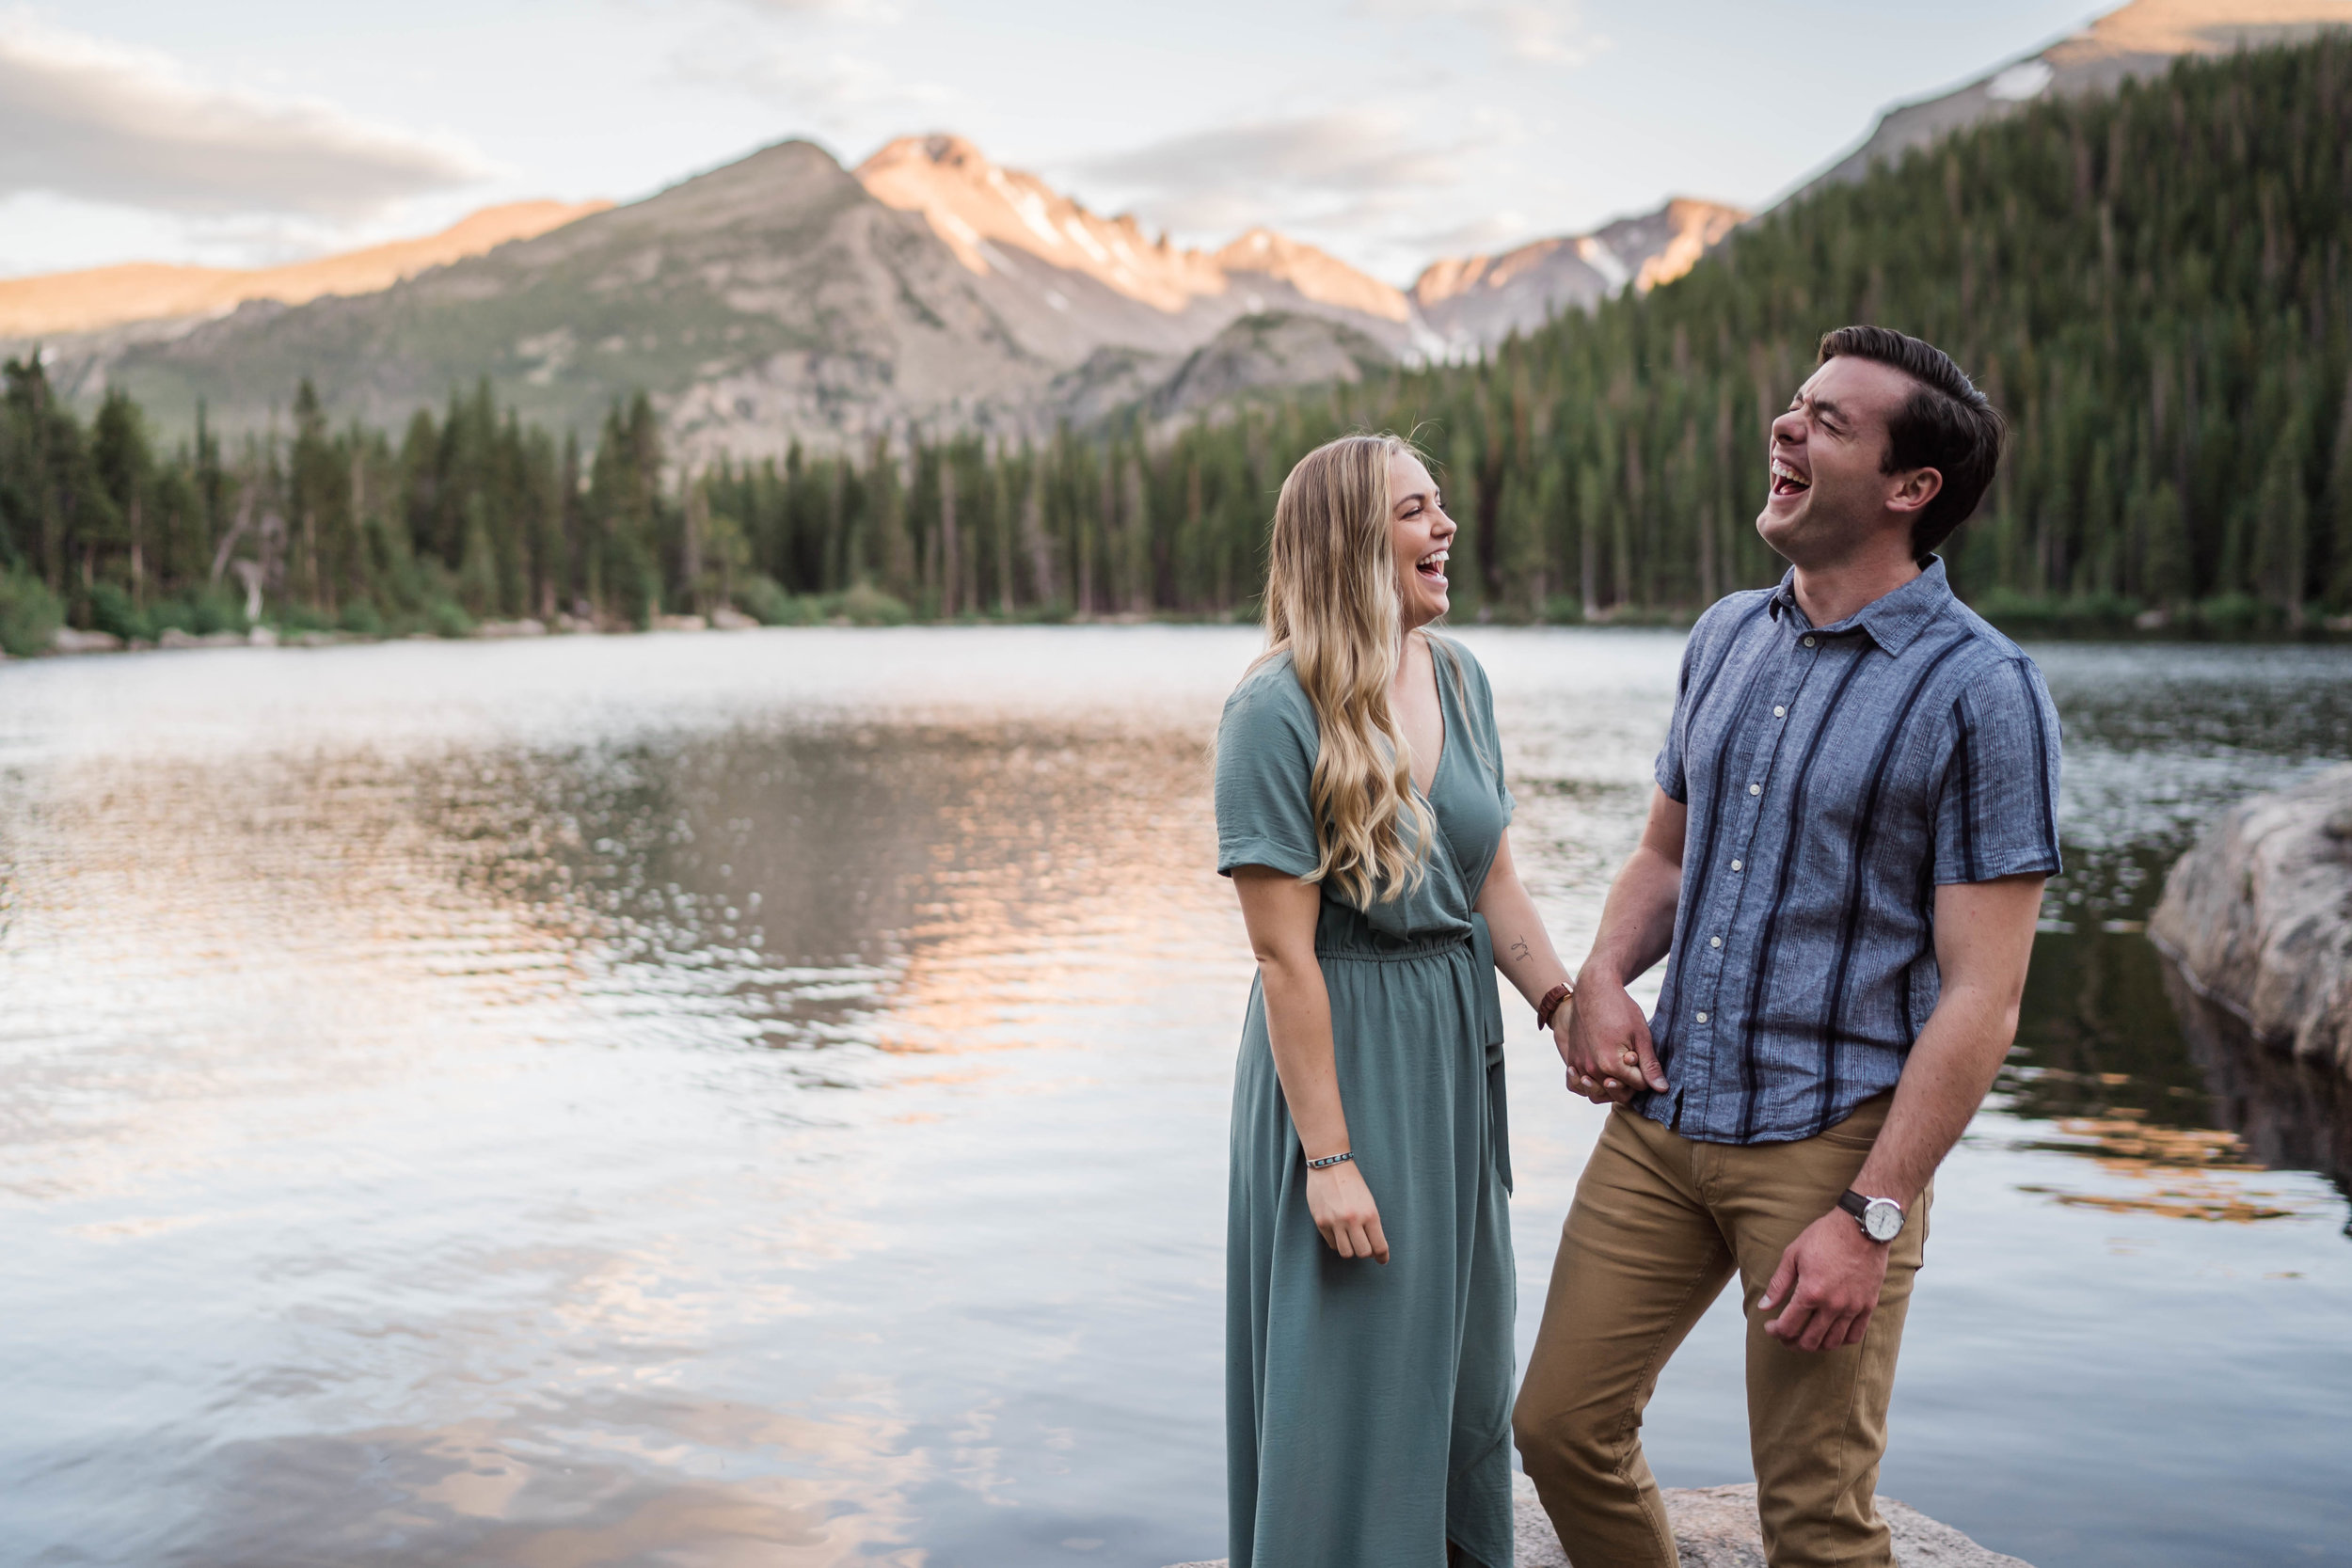 engagement photos in rocky mountain national park RMNP at bear lake -DSD06866.jpg